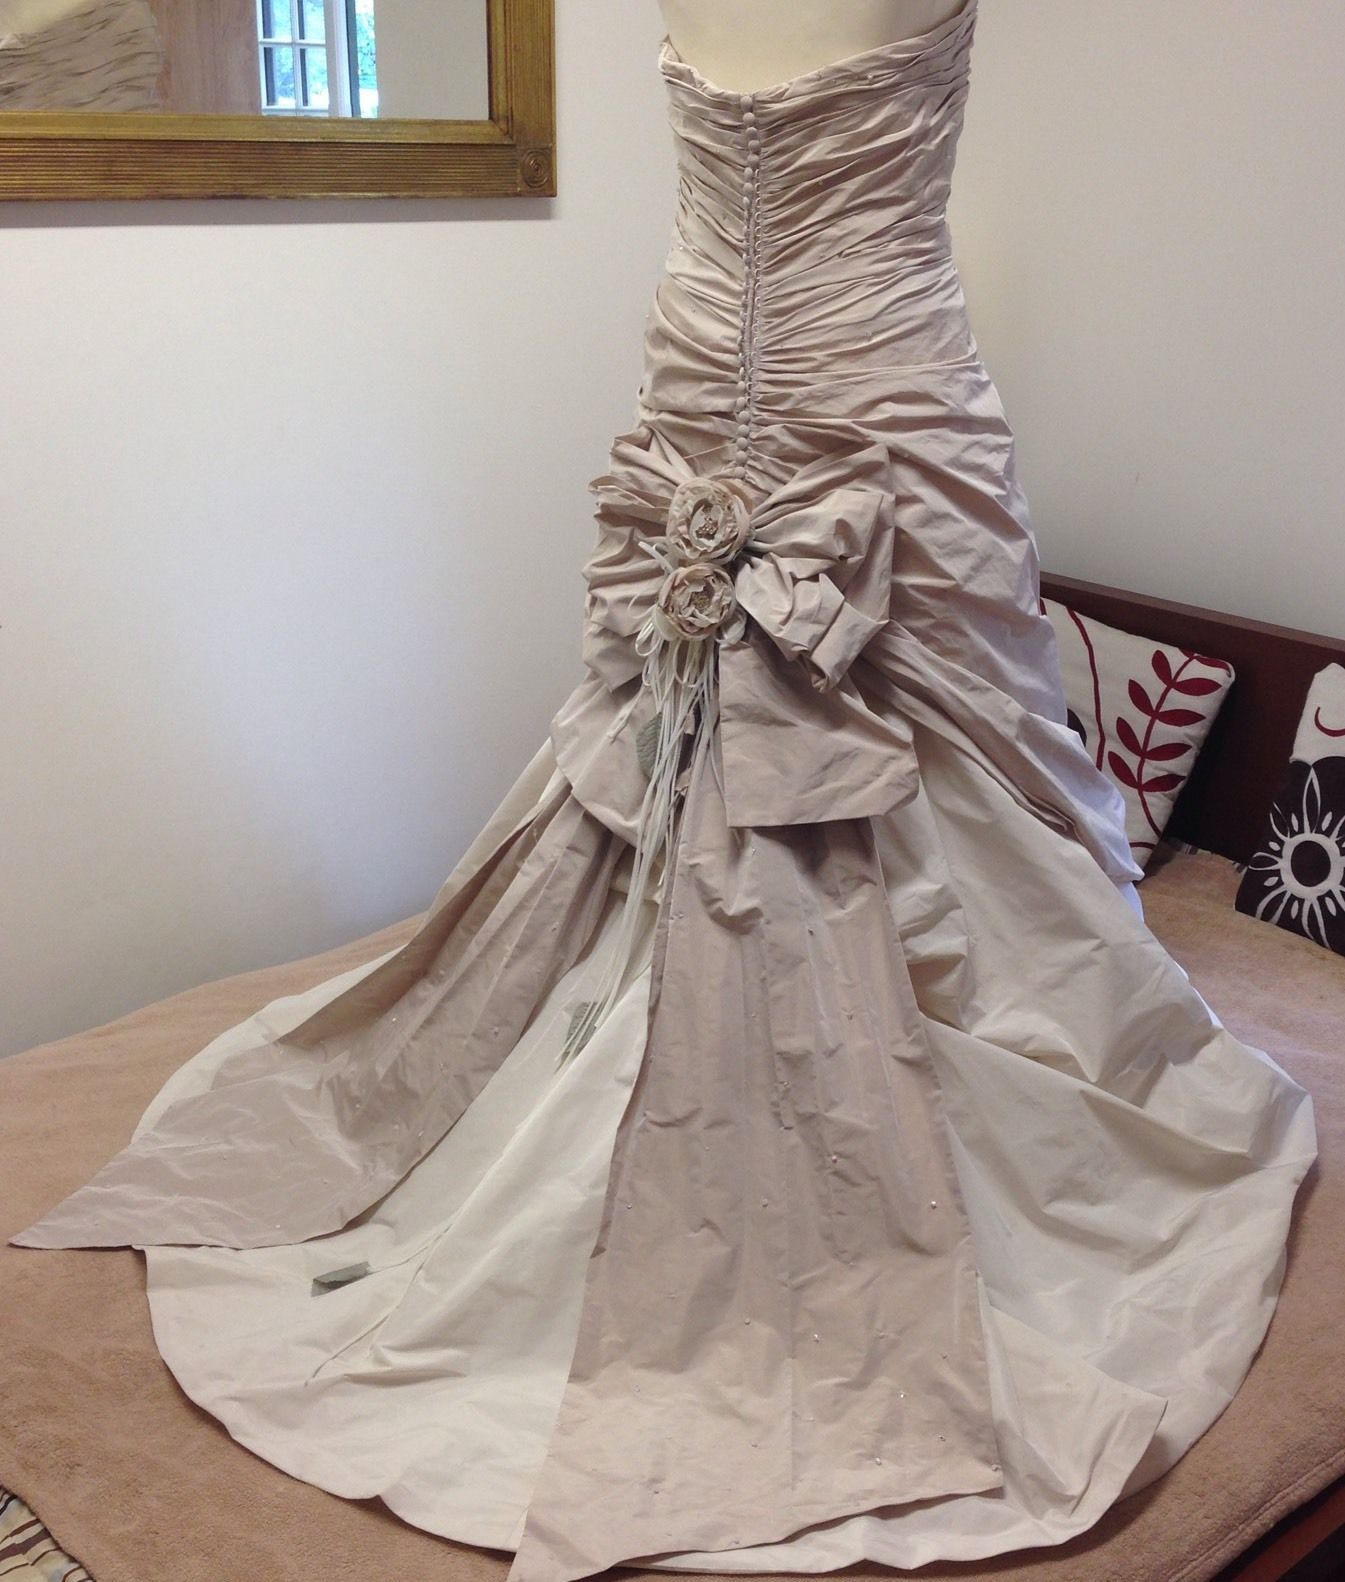 Ian Stuart Florence Wedding Dress Size 14 16 Antique Pink Swarovski In Clothes Shoes Accessories Weddi Wedding Dresses Size 14 Wedding Dresses Ebay Dresses